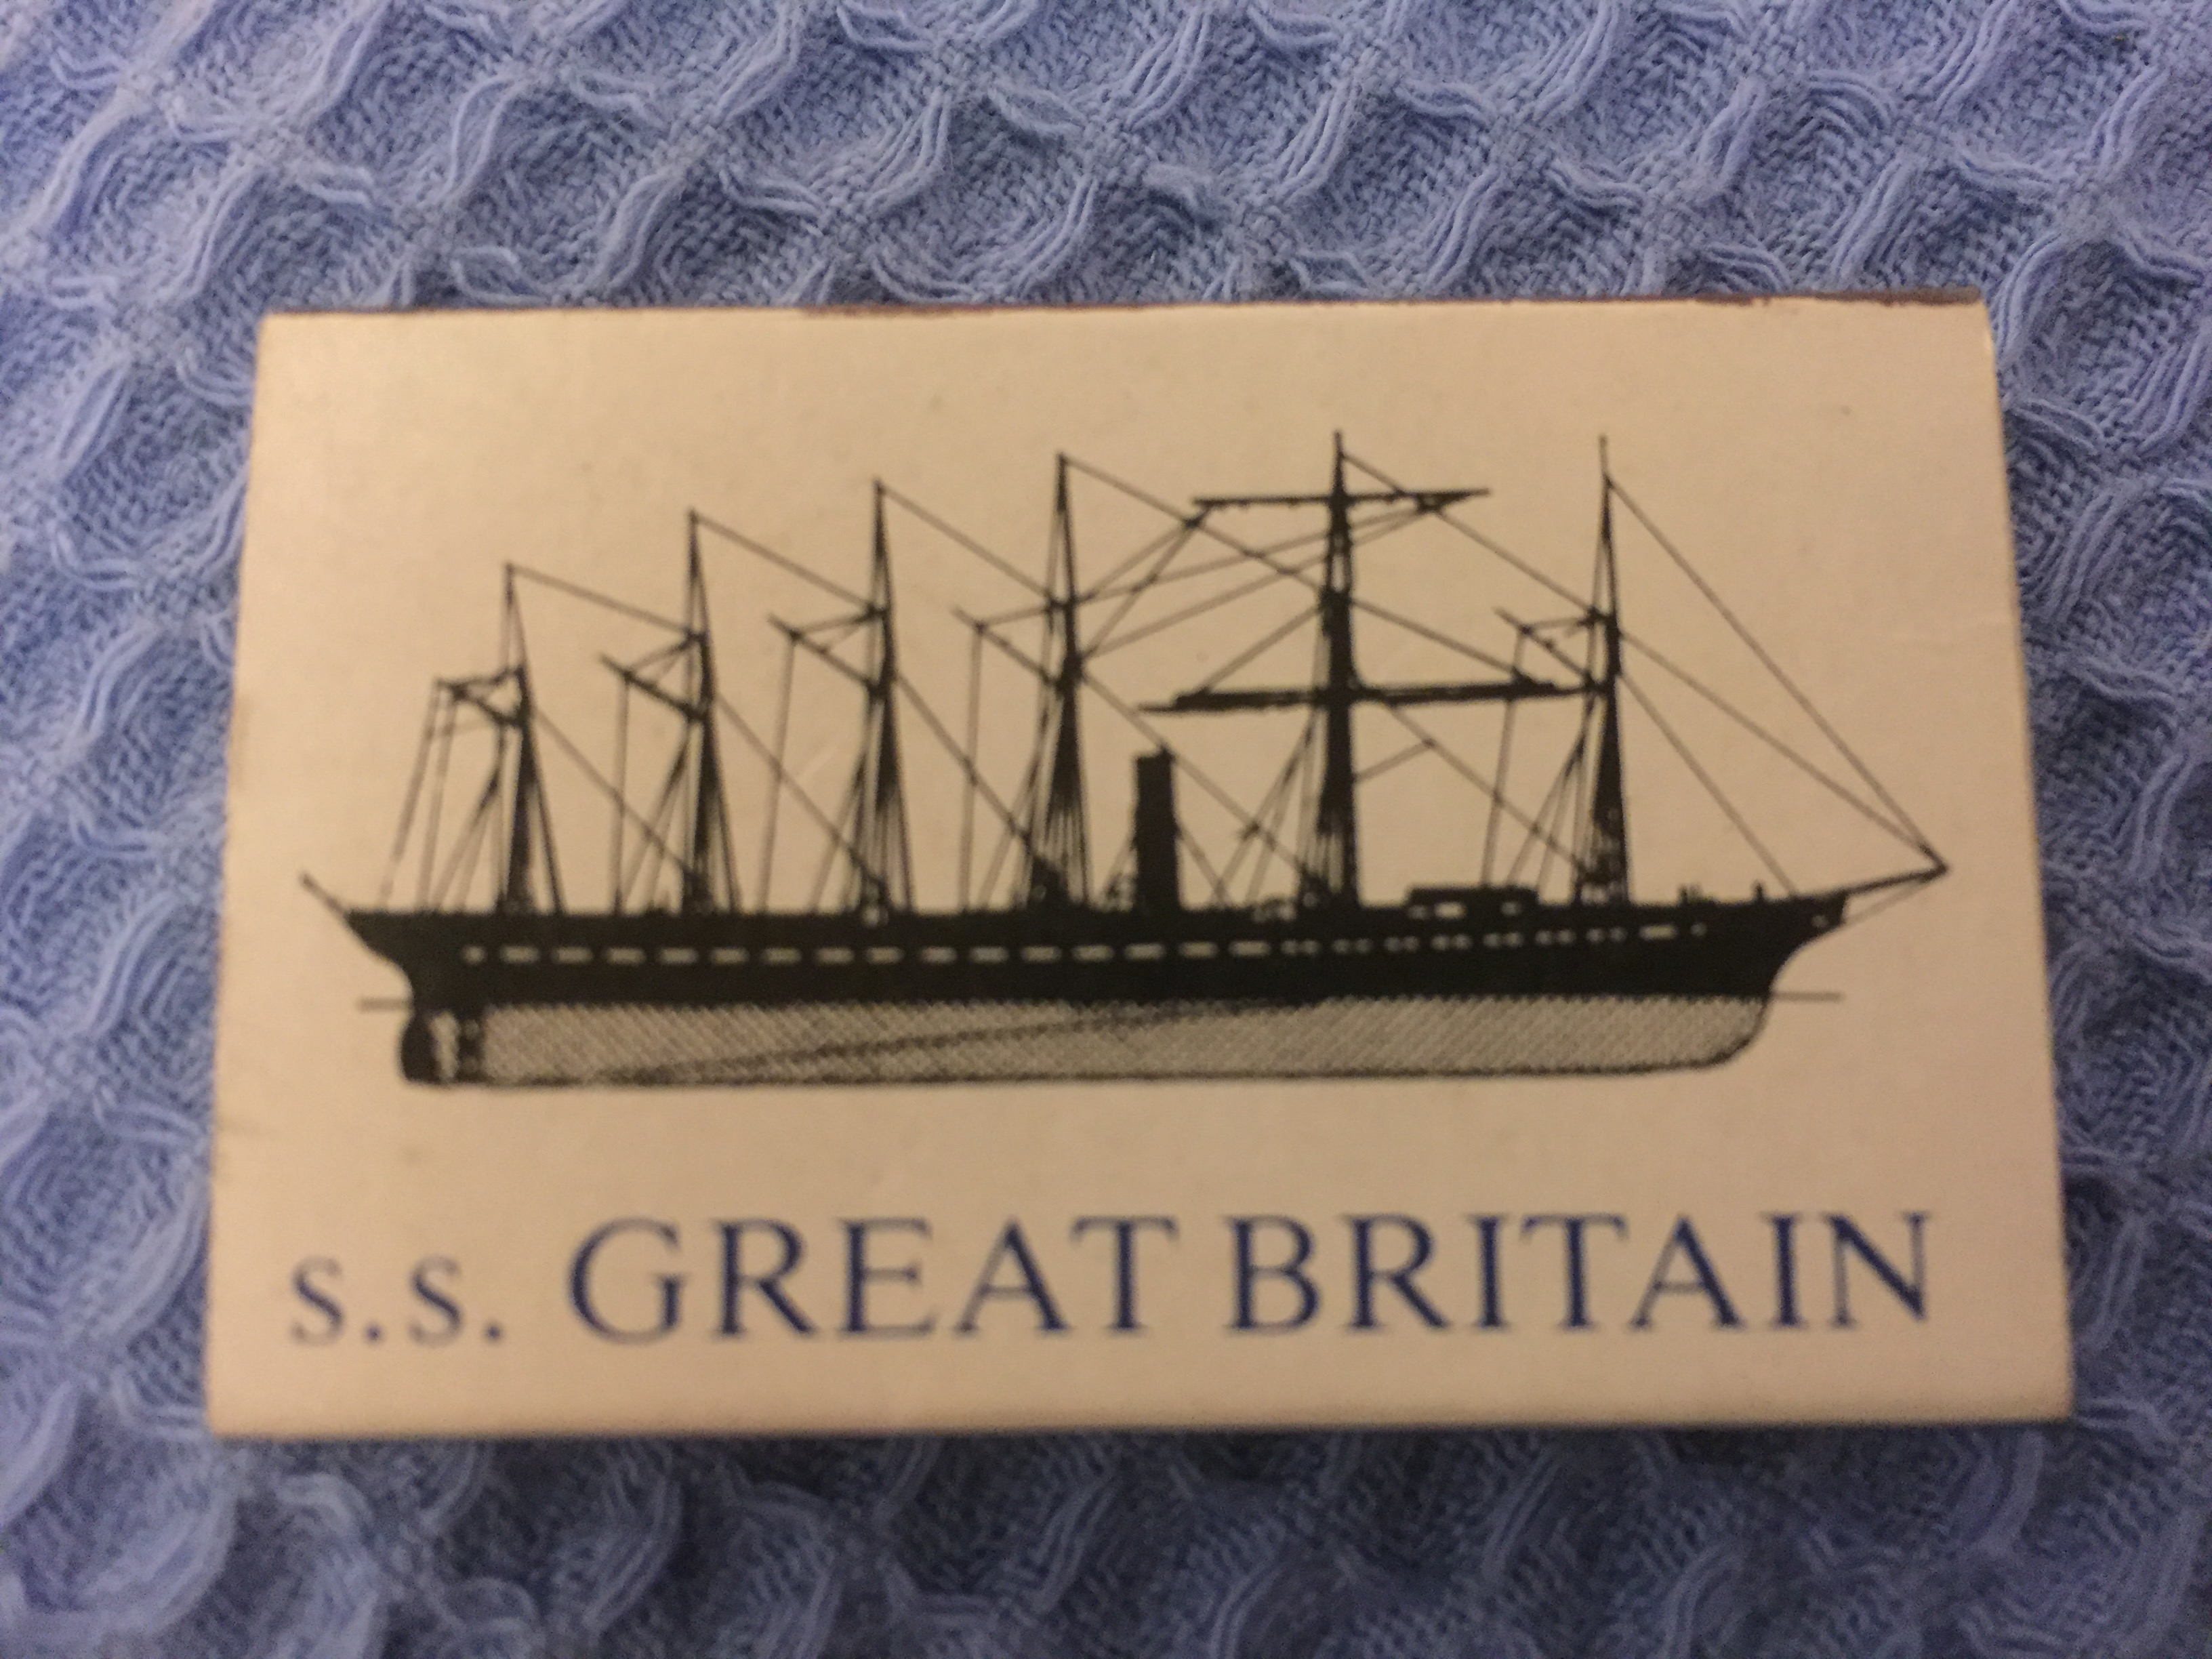 UNUSED SOUVENIR BOX OF MATCHES FROM THE VESSEL THE SS GREAT BRITAIN